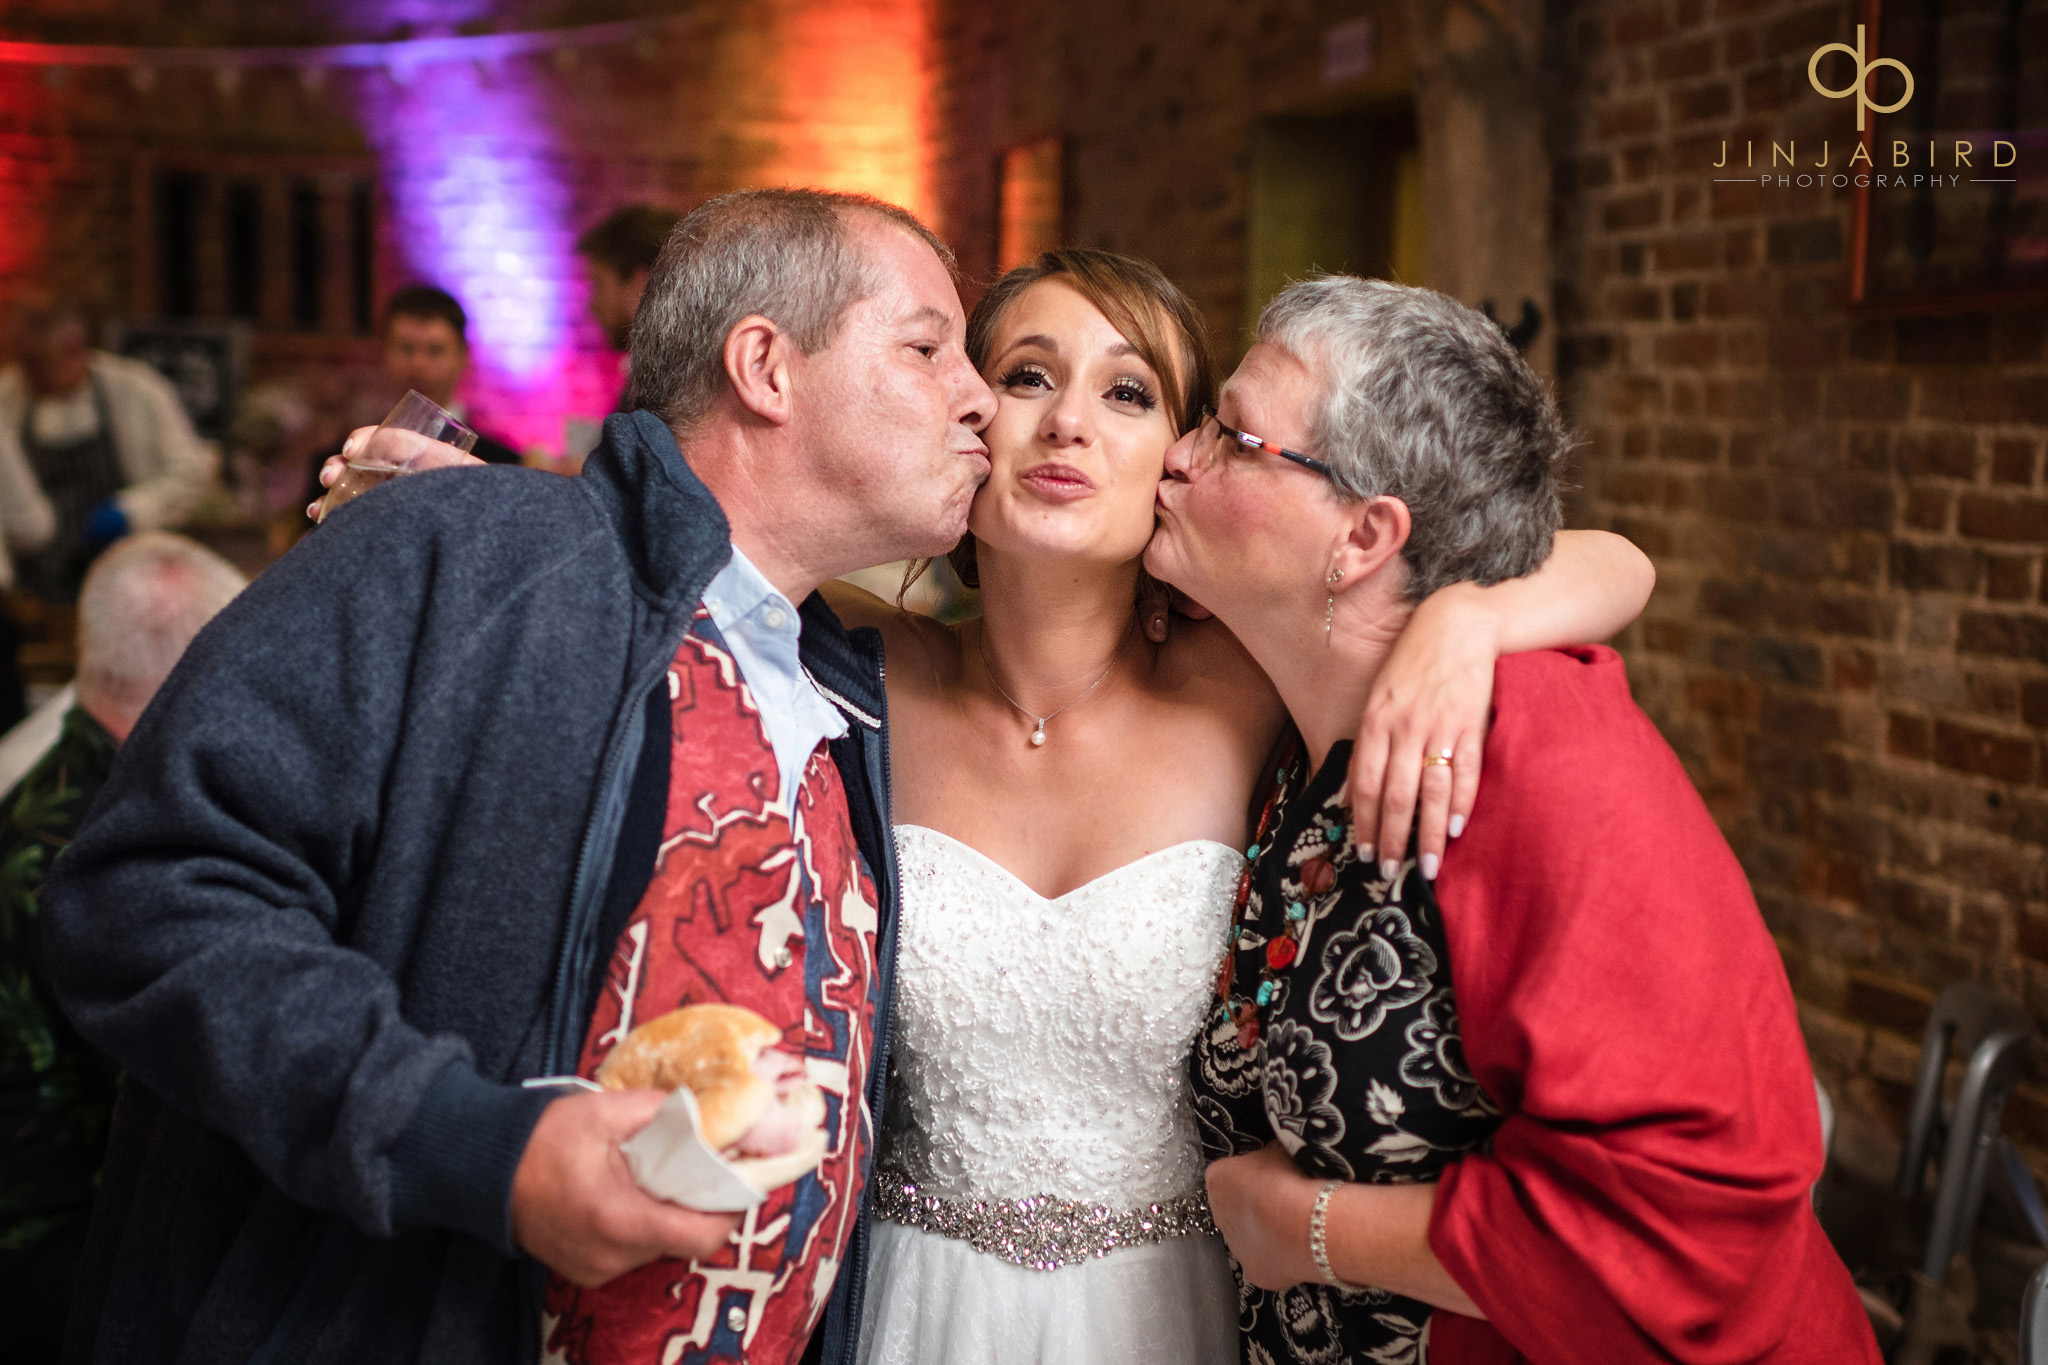 wedding guests kissing bride on cheeks